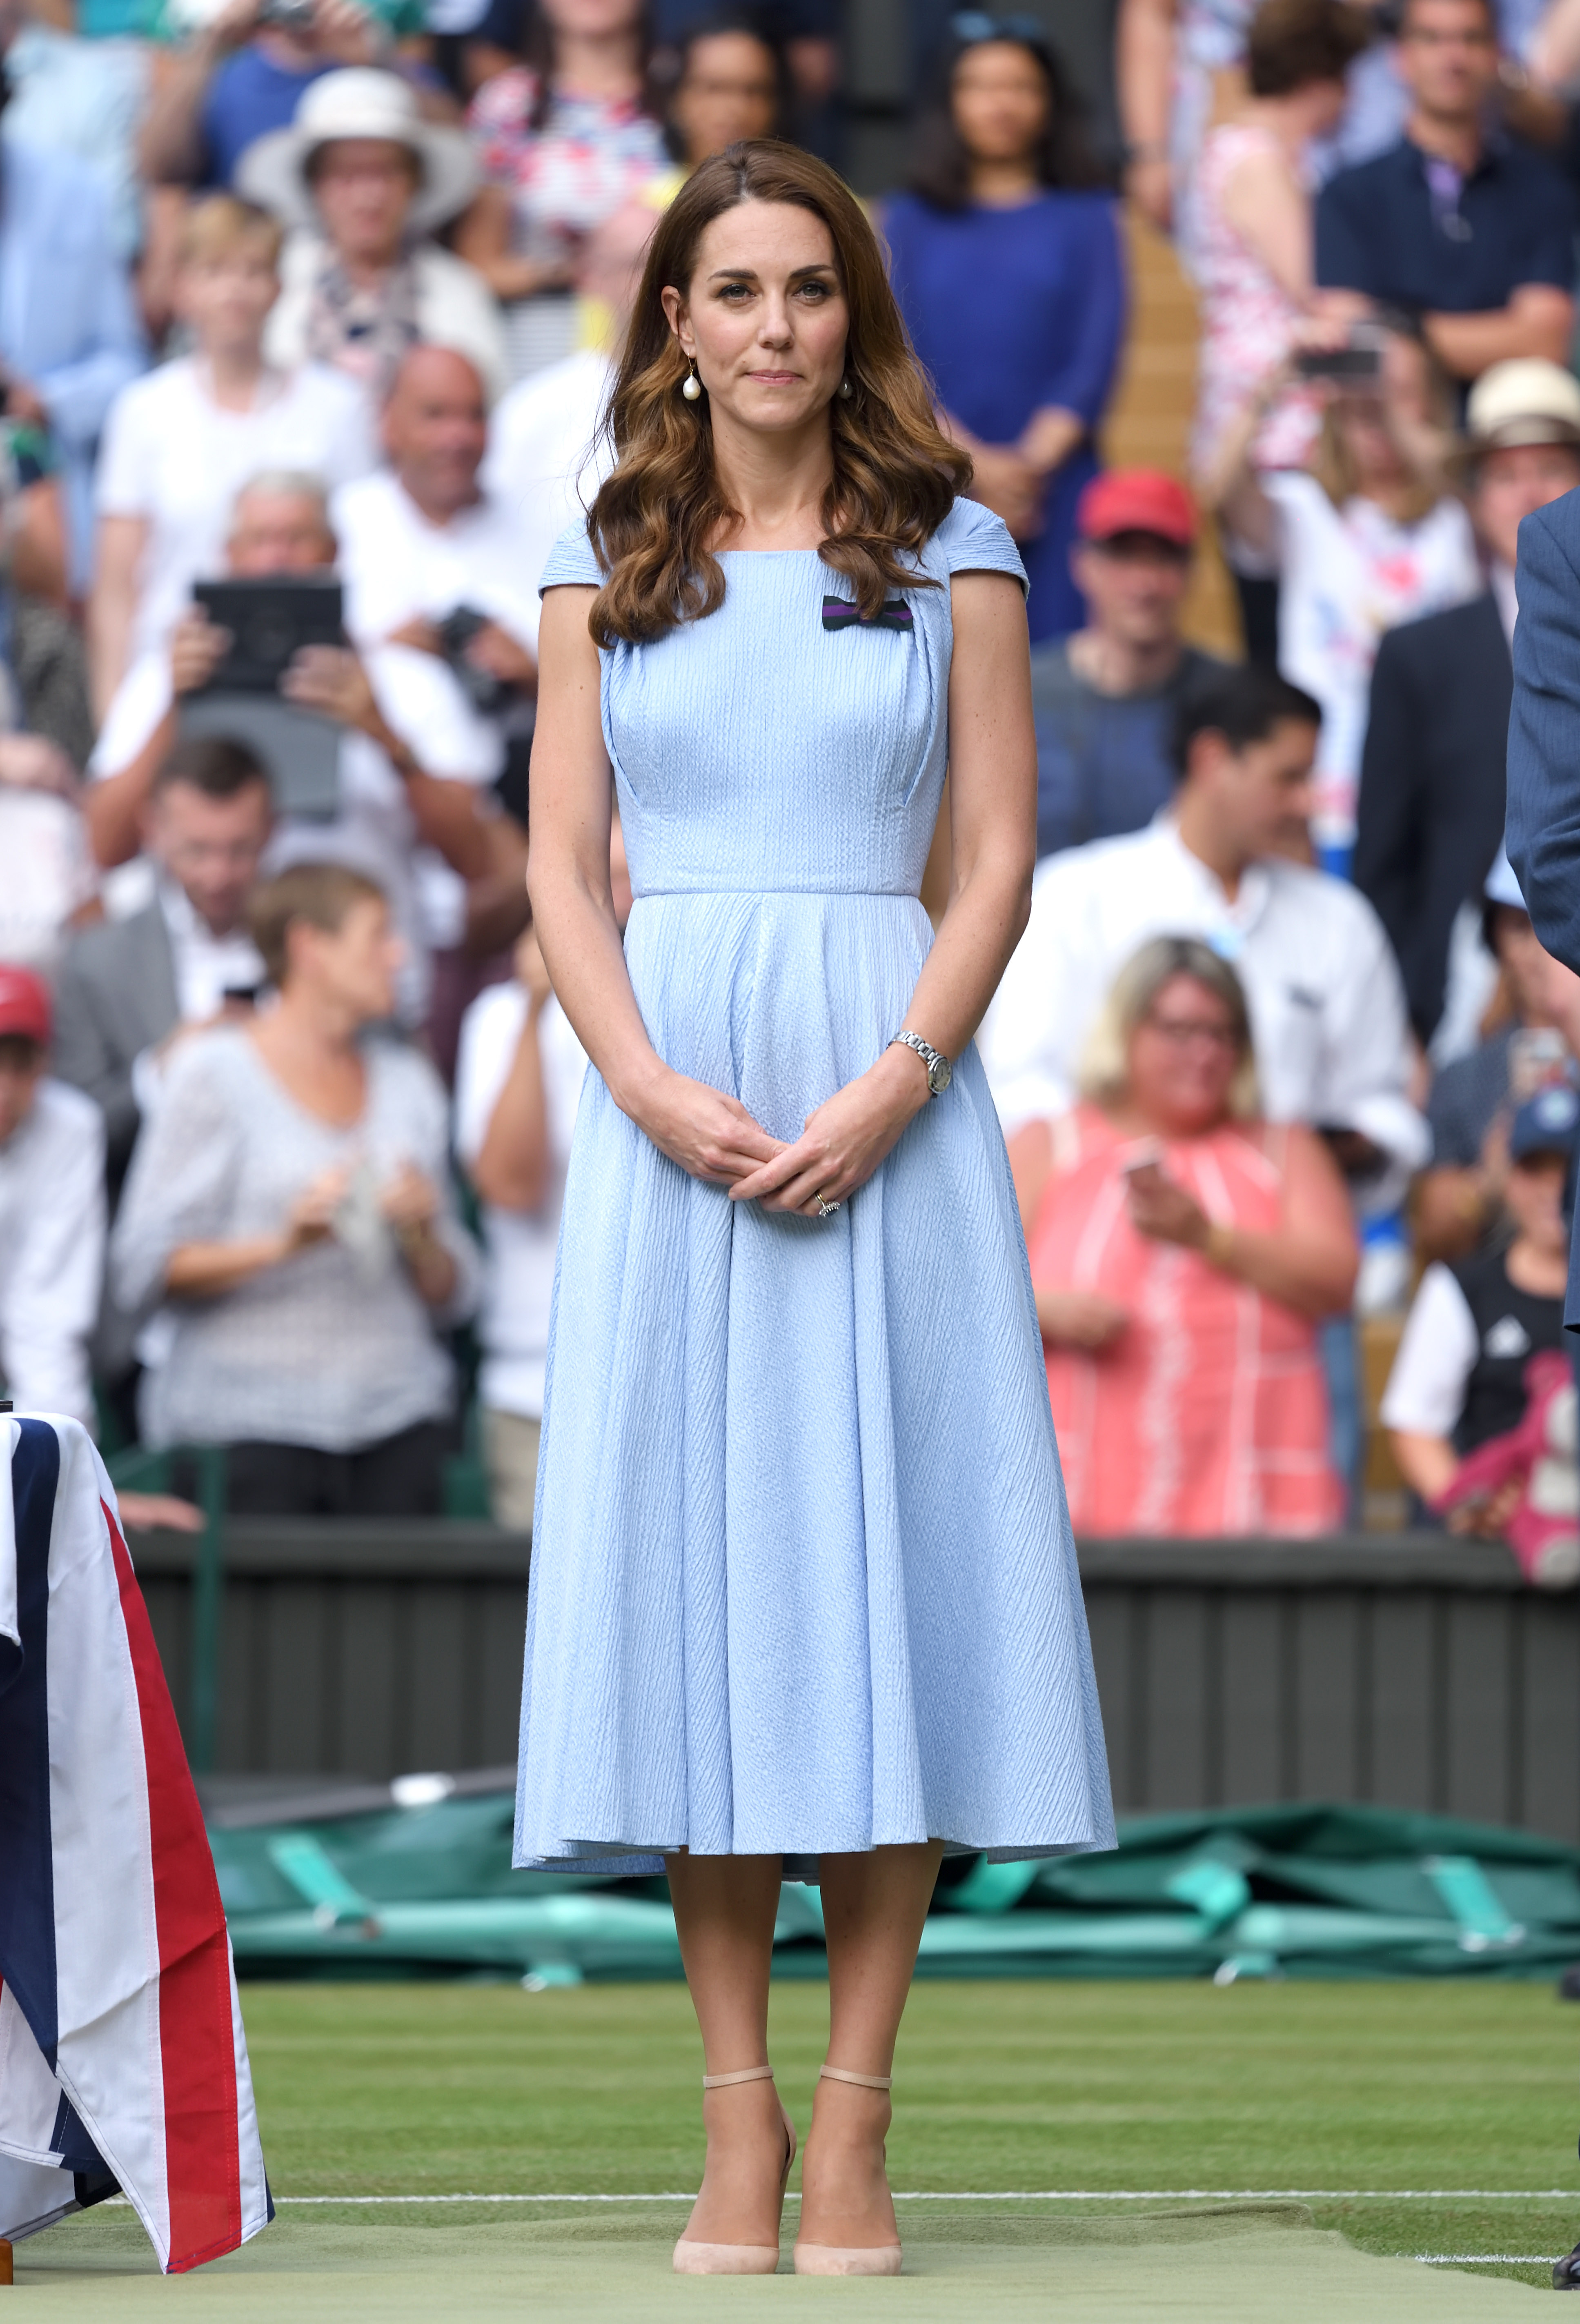 LONDON, ENGLAND - JULY 14: Catherine, Duchess of Cambridge on Centre court during Men's Finals Day of the Wimbledon Tennis Championships at All England Lawn Tennis and Croquet Club on July 14, 2019 in London, England. (Photo by Karwai Tang/Getty Images)